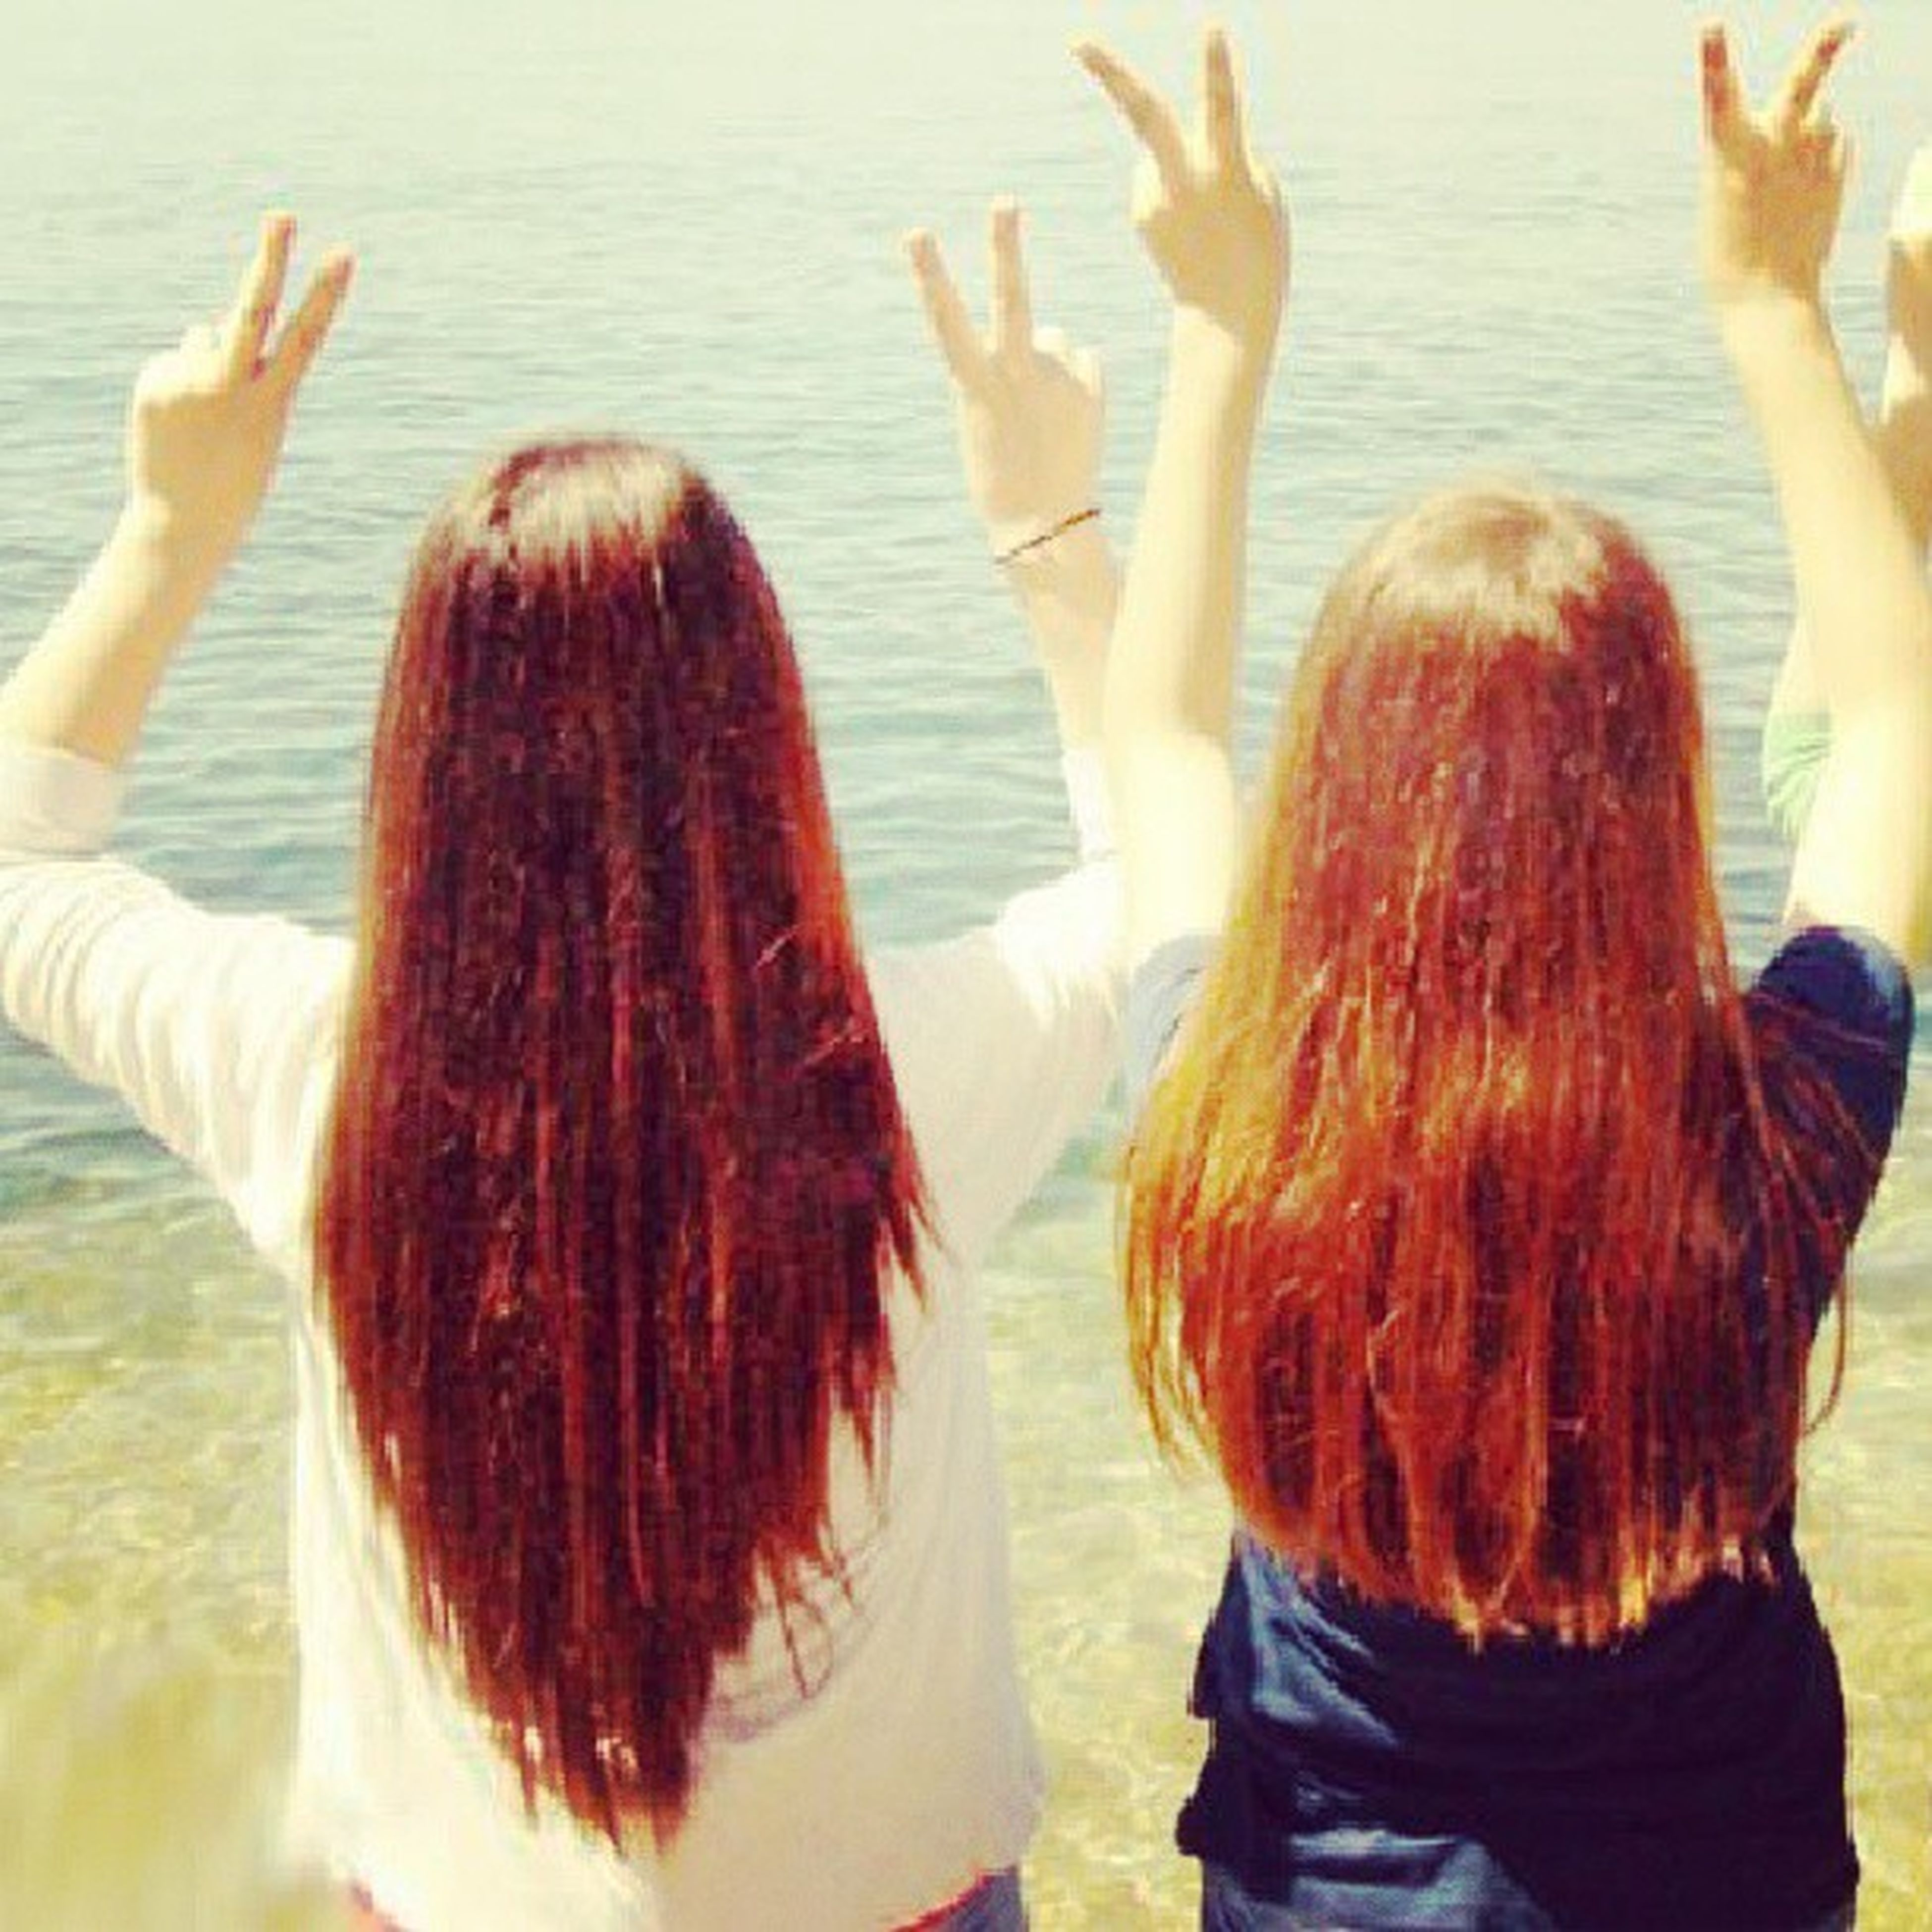 lifestyles, leisure activity, long hair, young women, togetherness, water, person, bonding, vacations, young adult, rear view, enjoyment, blond hair, brown hair, love, friendship